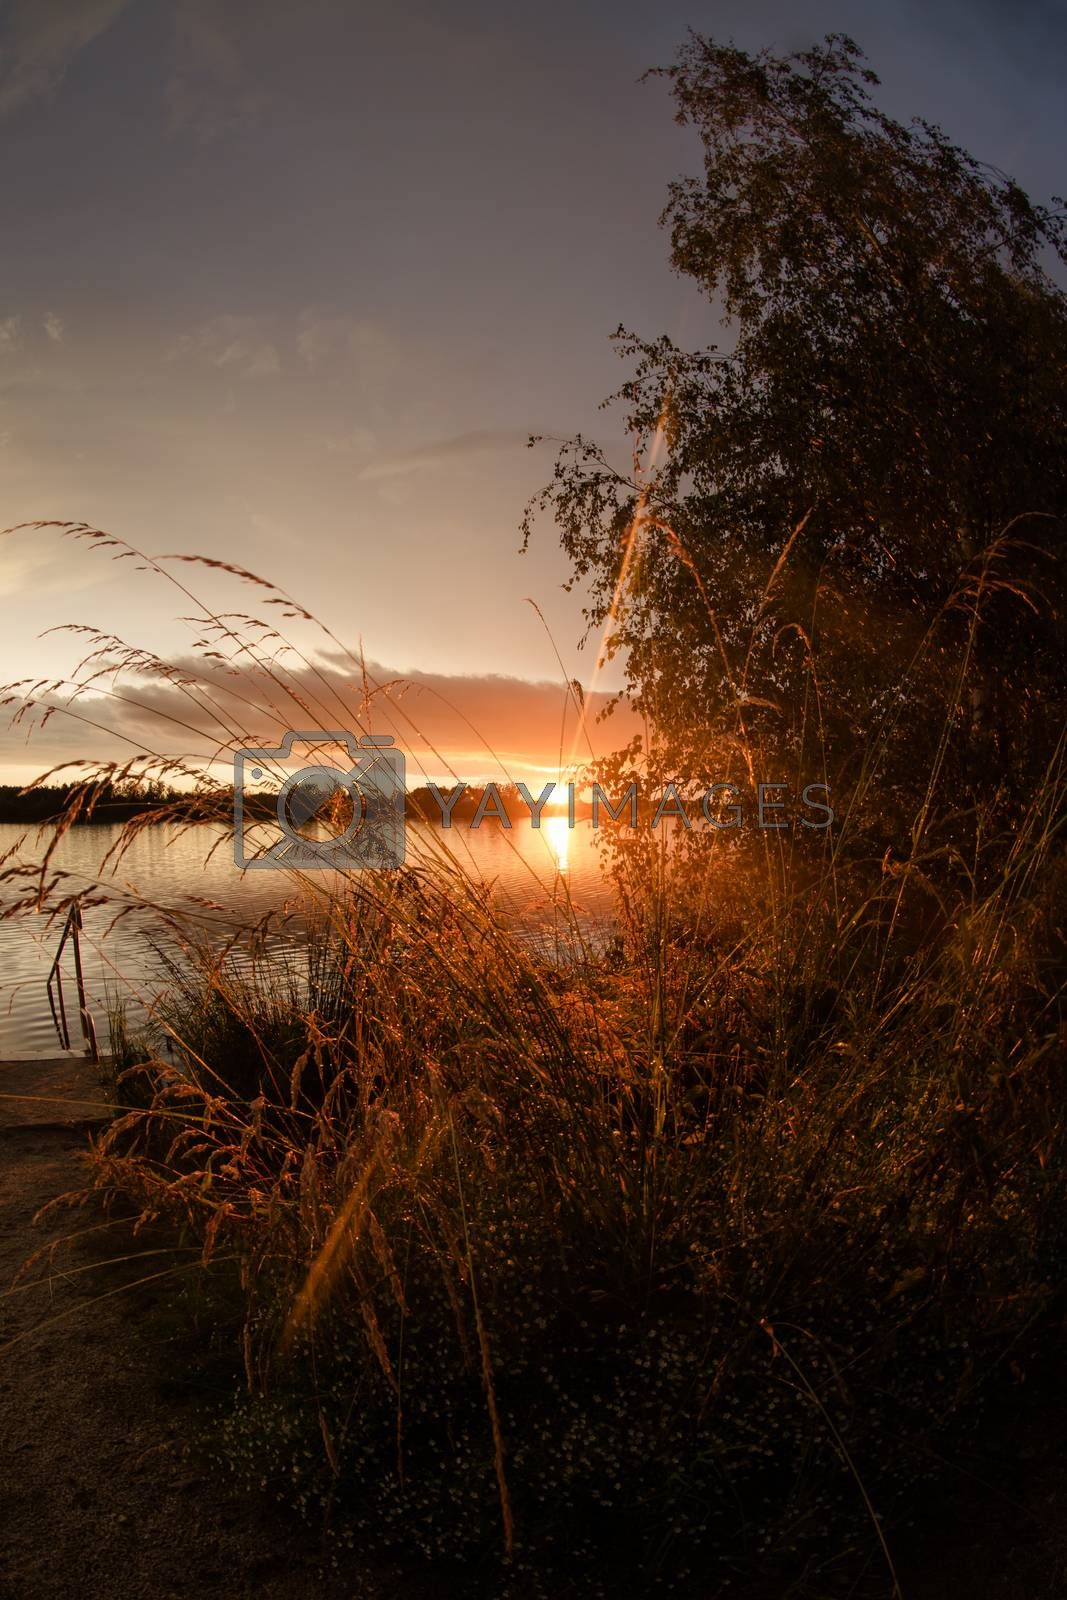 Landscape at the Murner lake, Wackersdorf, Bavaria by Sandra Fotodesign